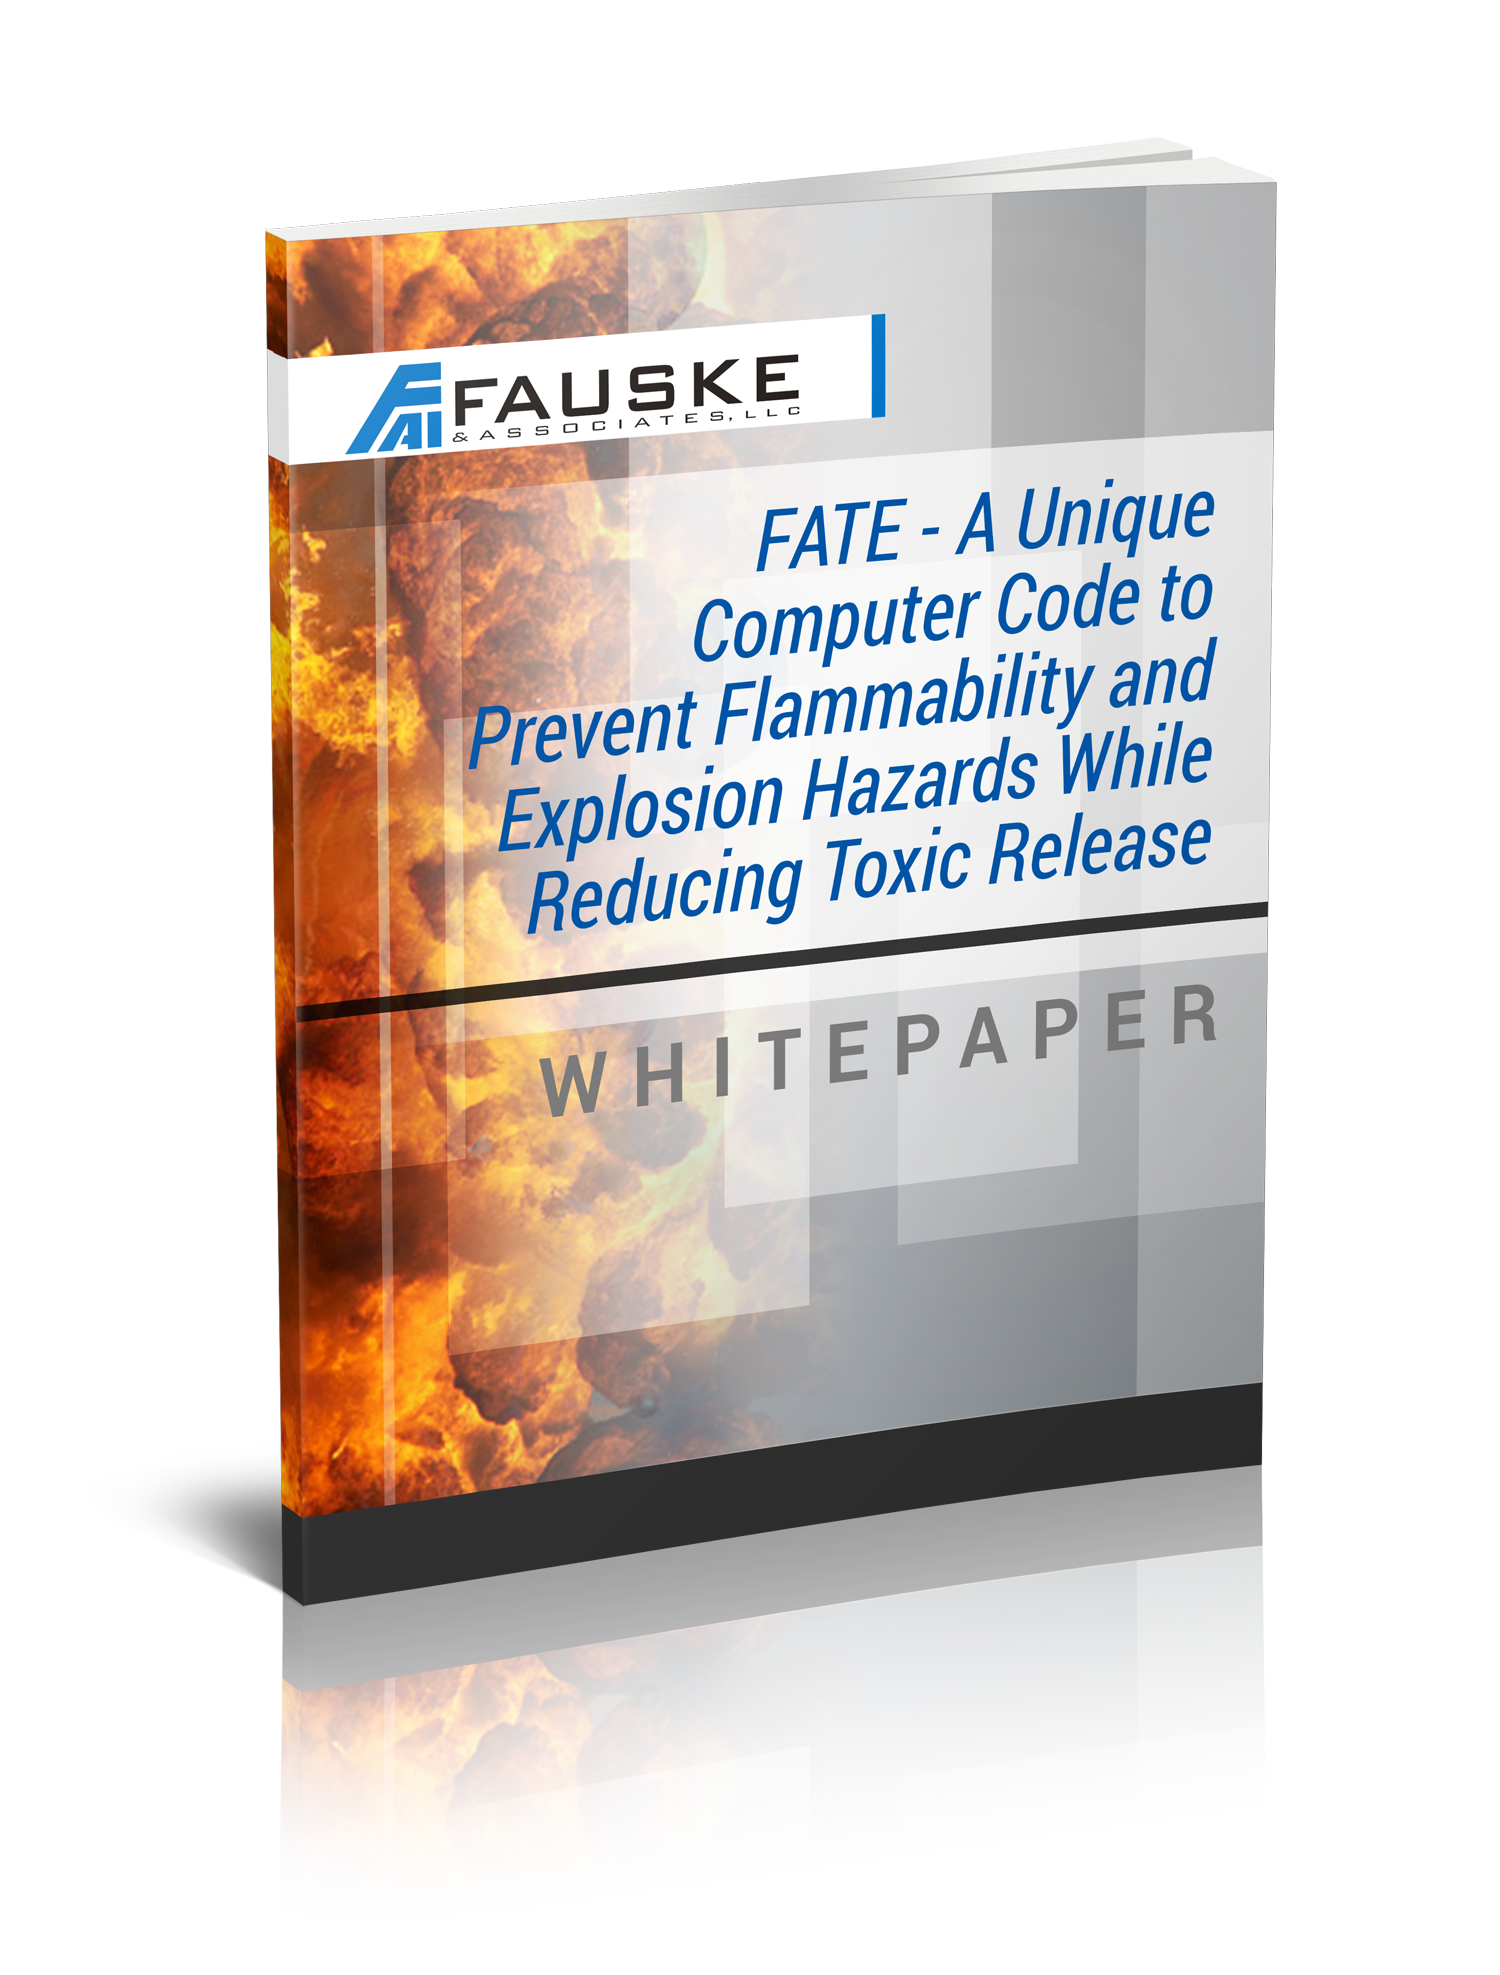 fauske-eb-cover-whitepaper-FATE.png